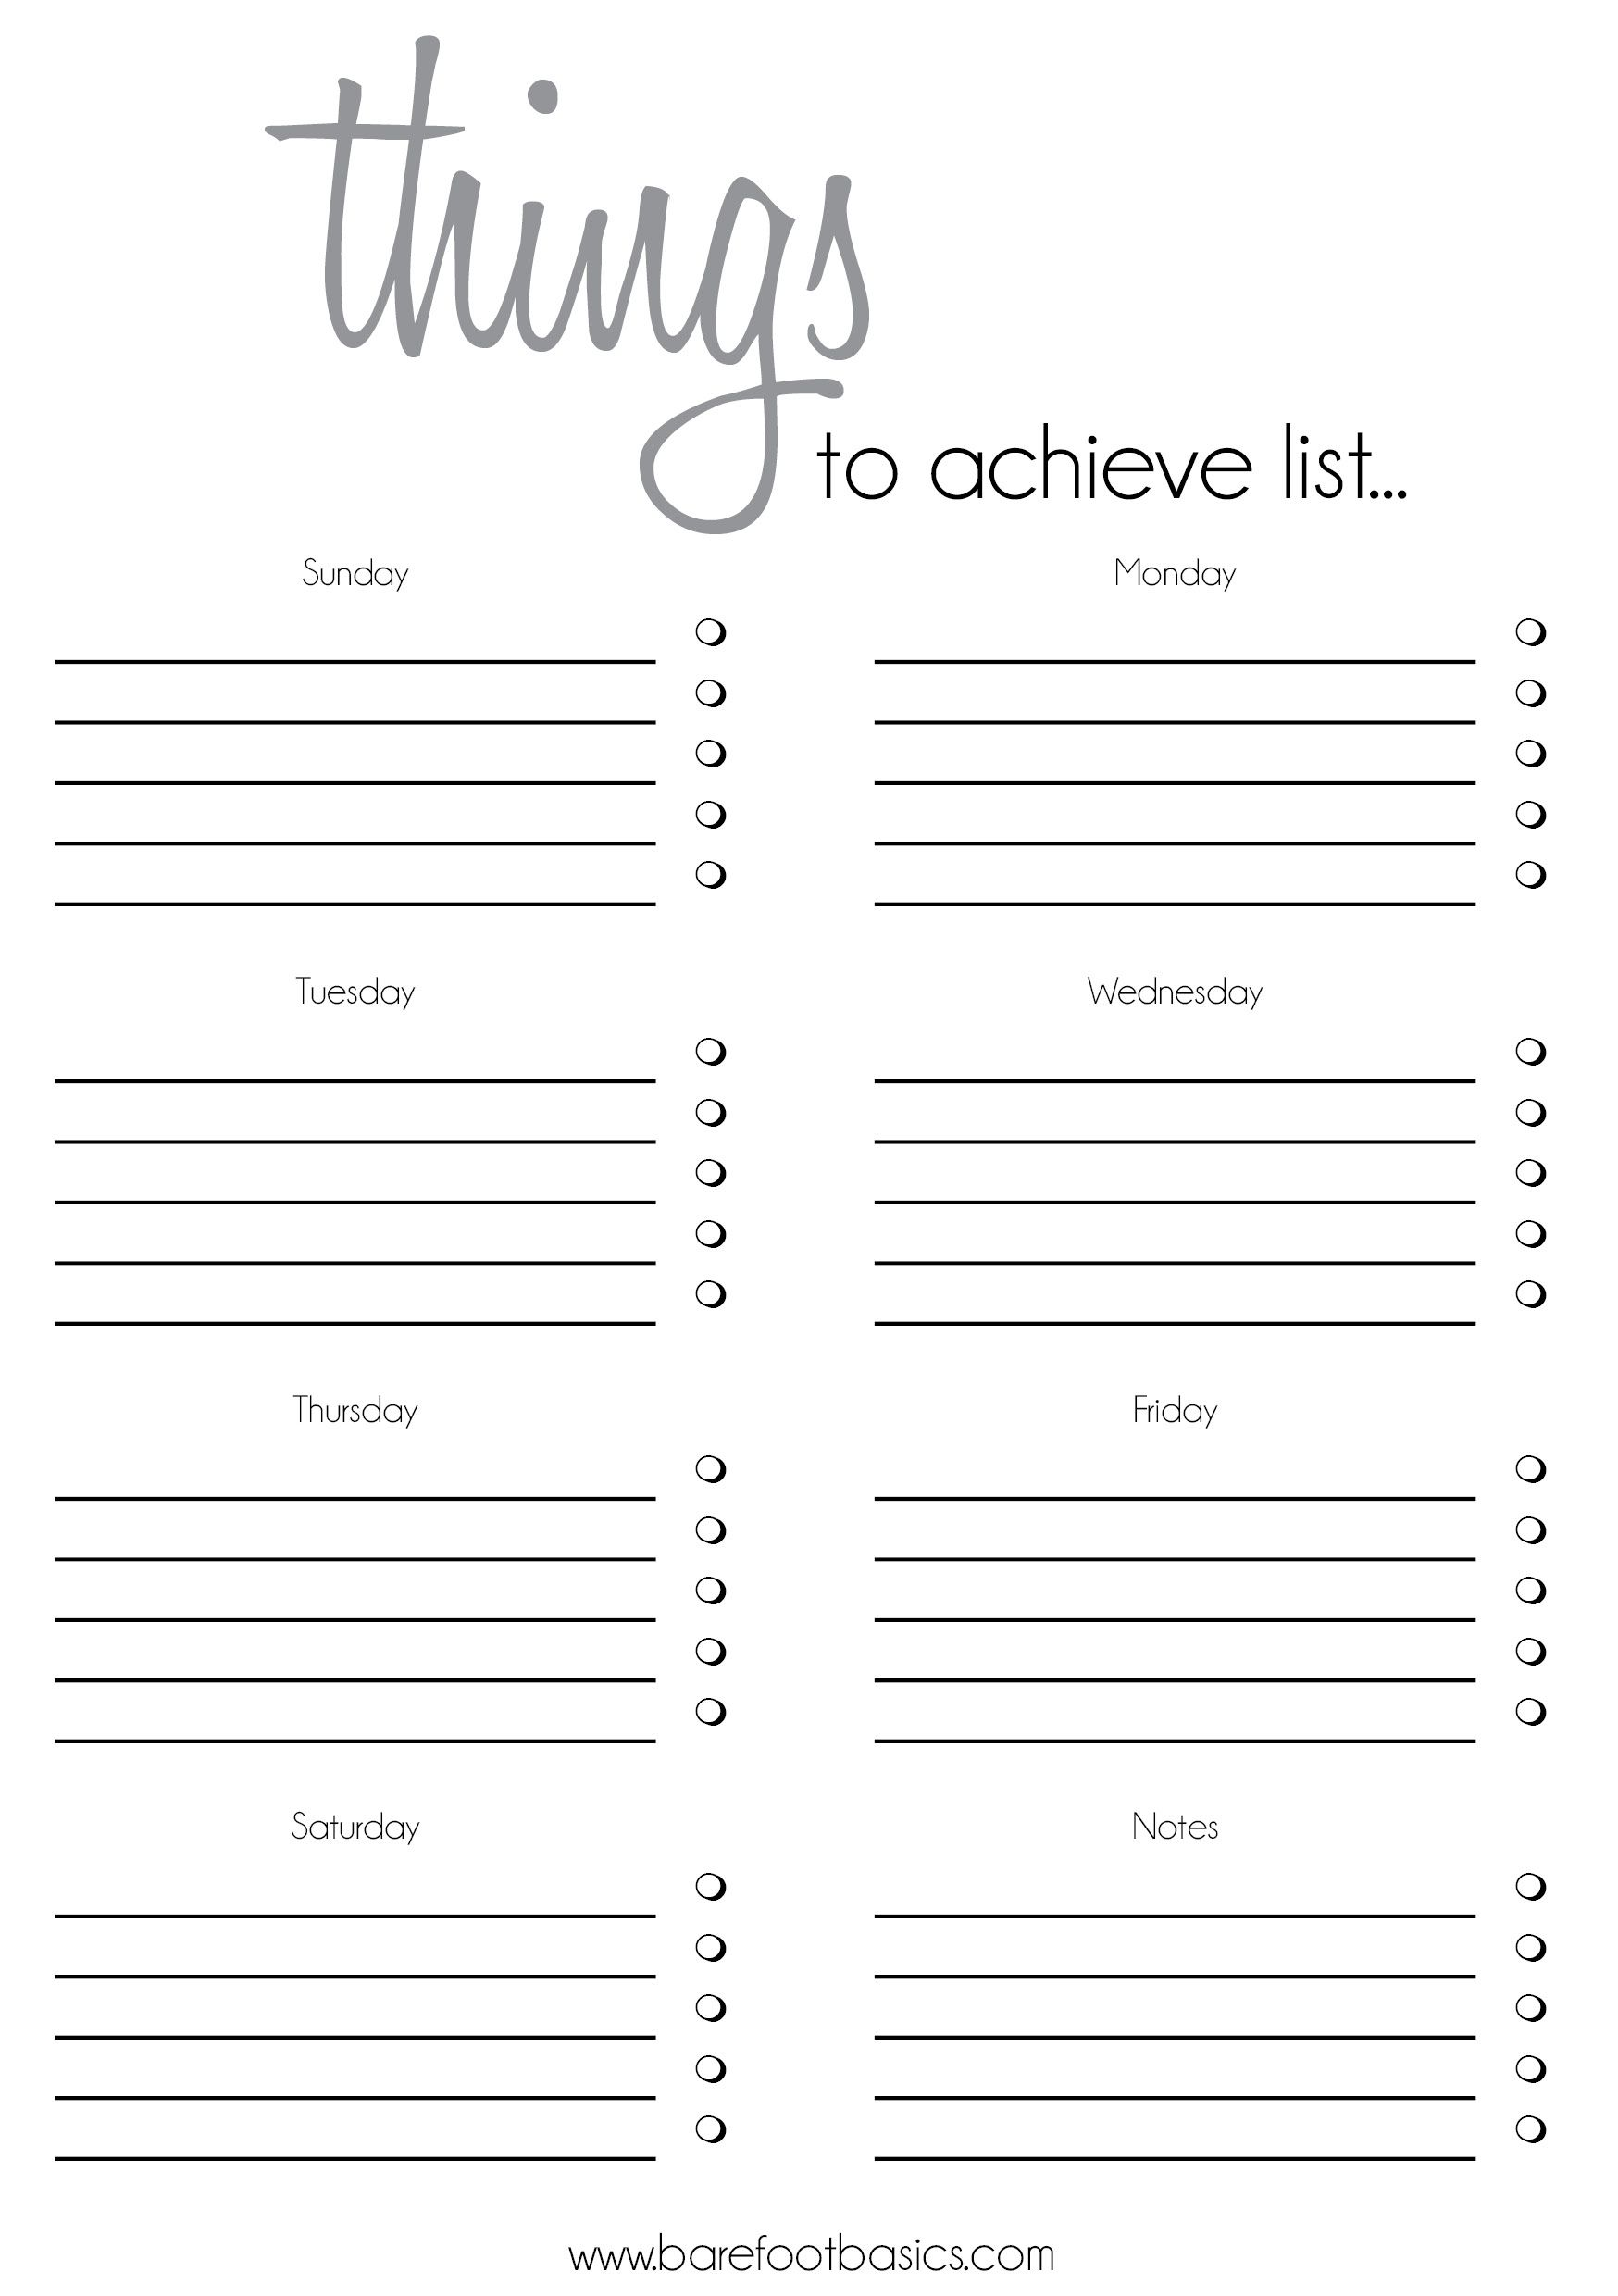 To Do List Template  Rochelle Stone  Barefoot Basics  Soul